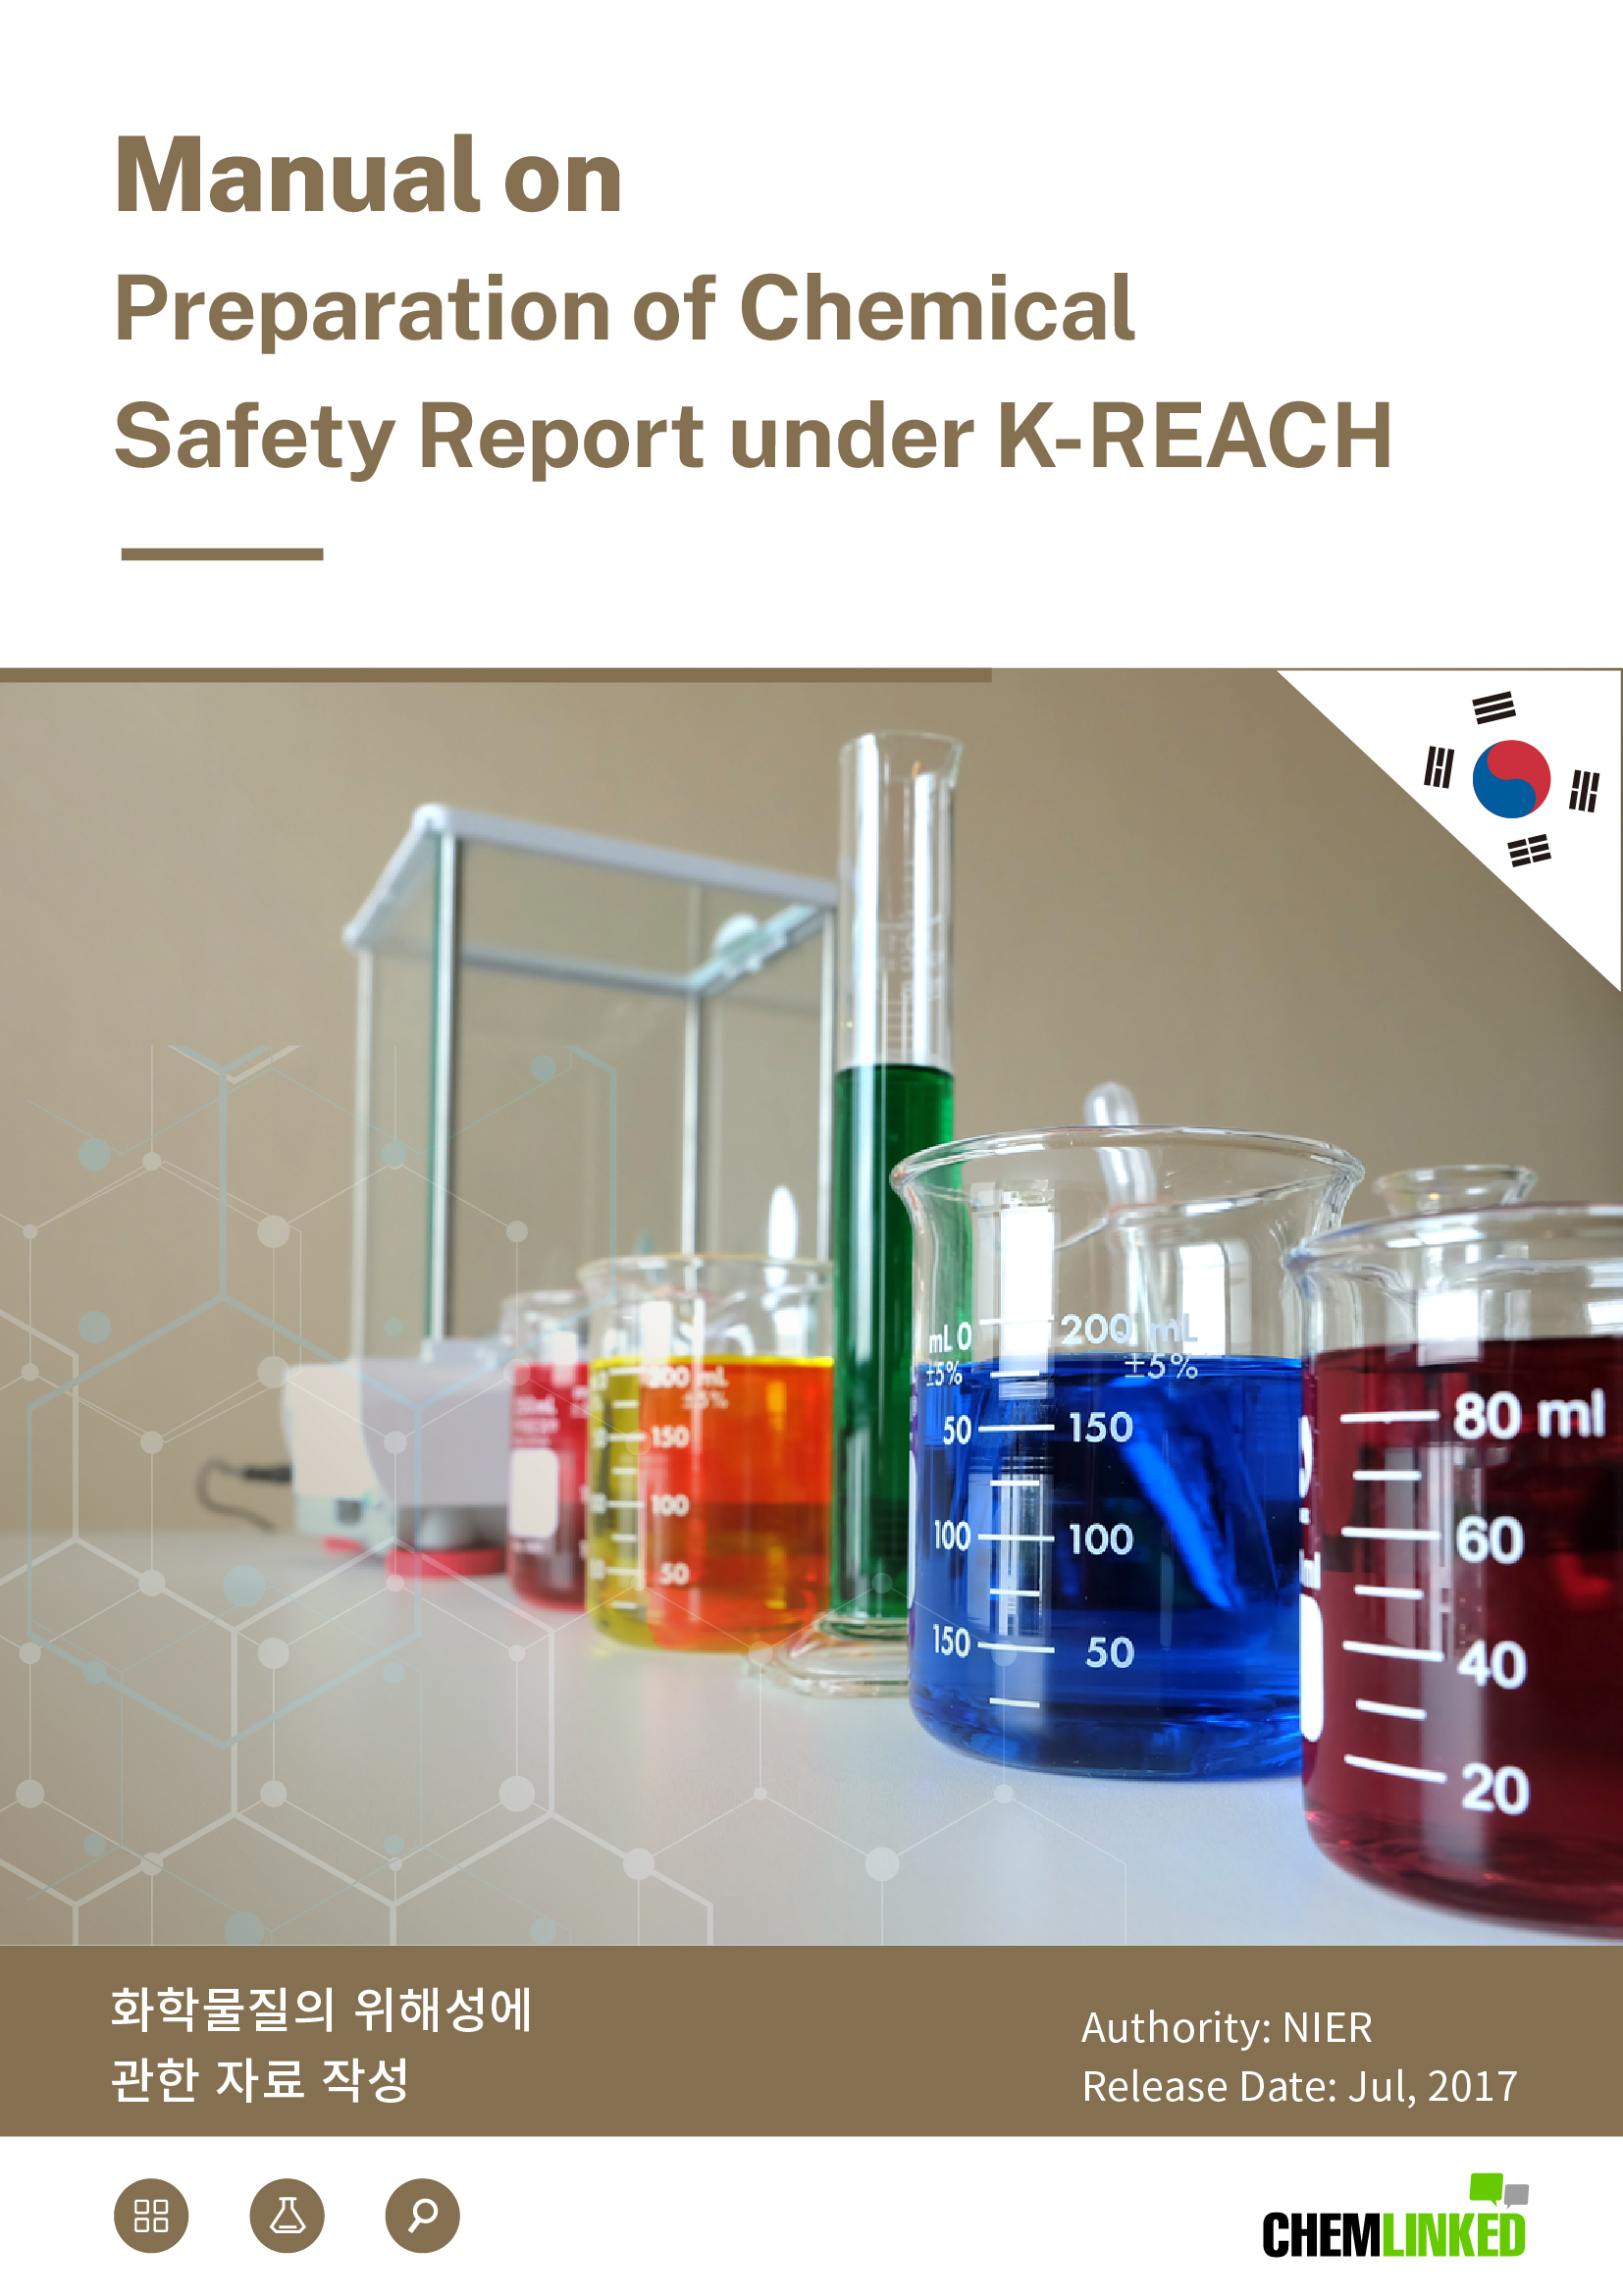 K-REACH: Manual on Preparation of Chemical Safety Report